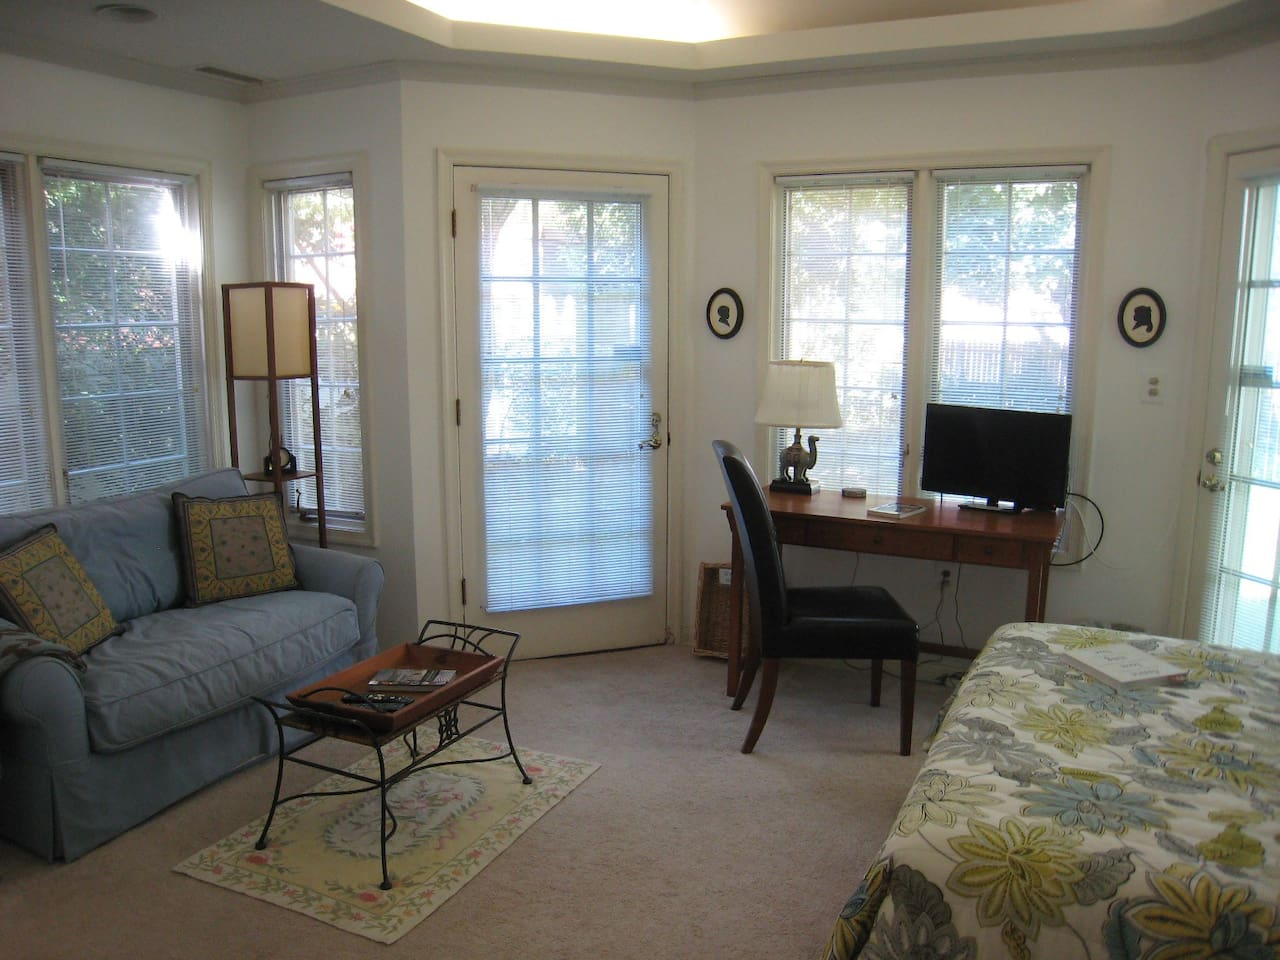 Our conservatory room features cathedral ceilings and wrap around windows